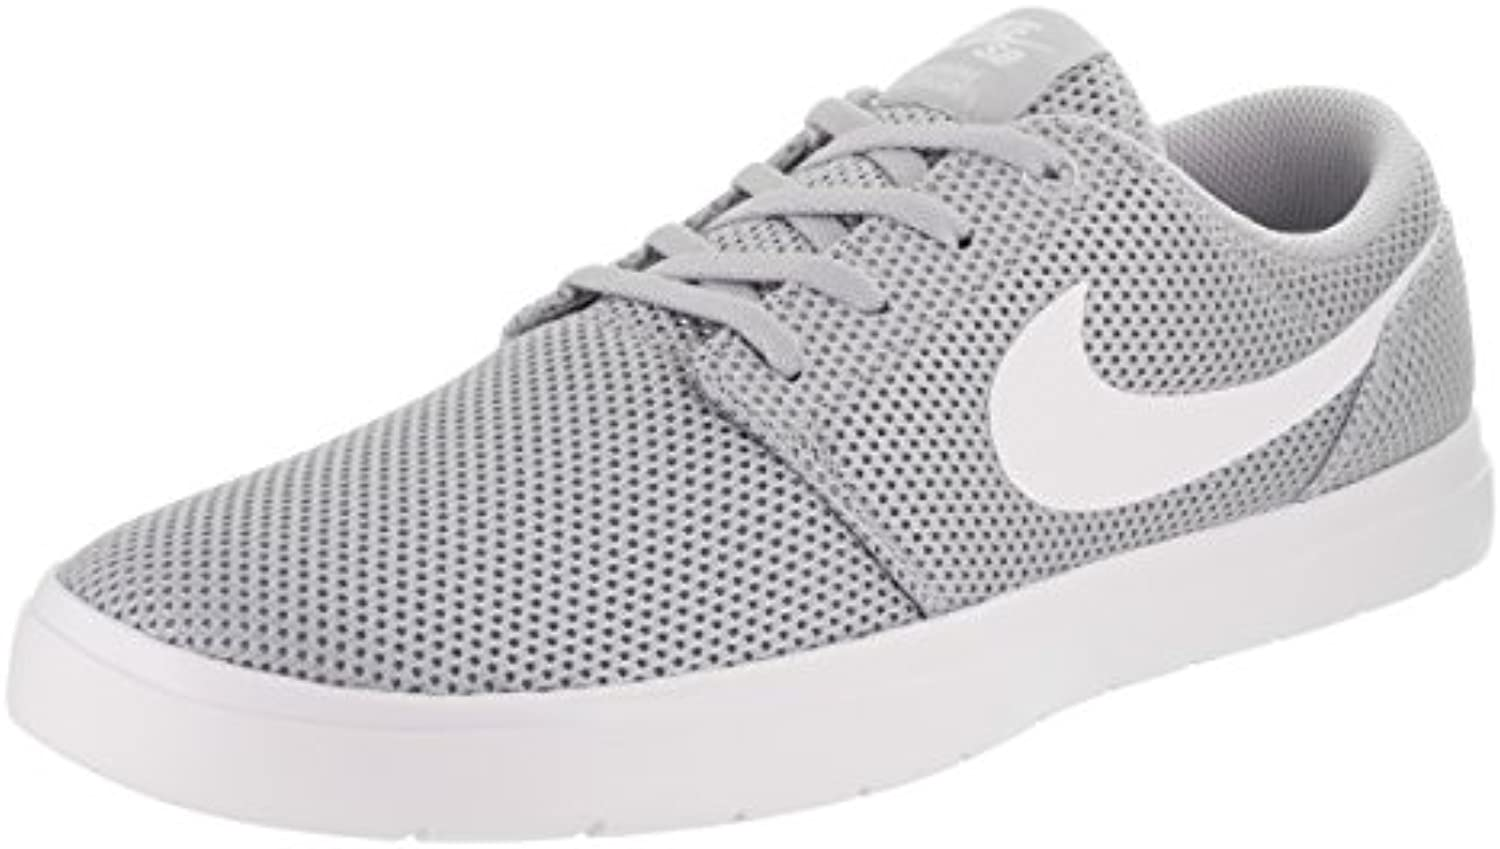 Zapatillas de skate Nike Sb Portmoire II Ultralight Wolf gris / blanco para hombre 11.5 Men US